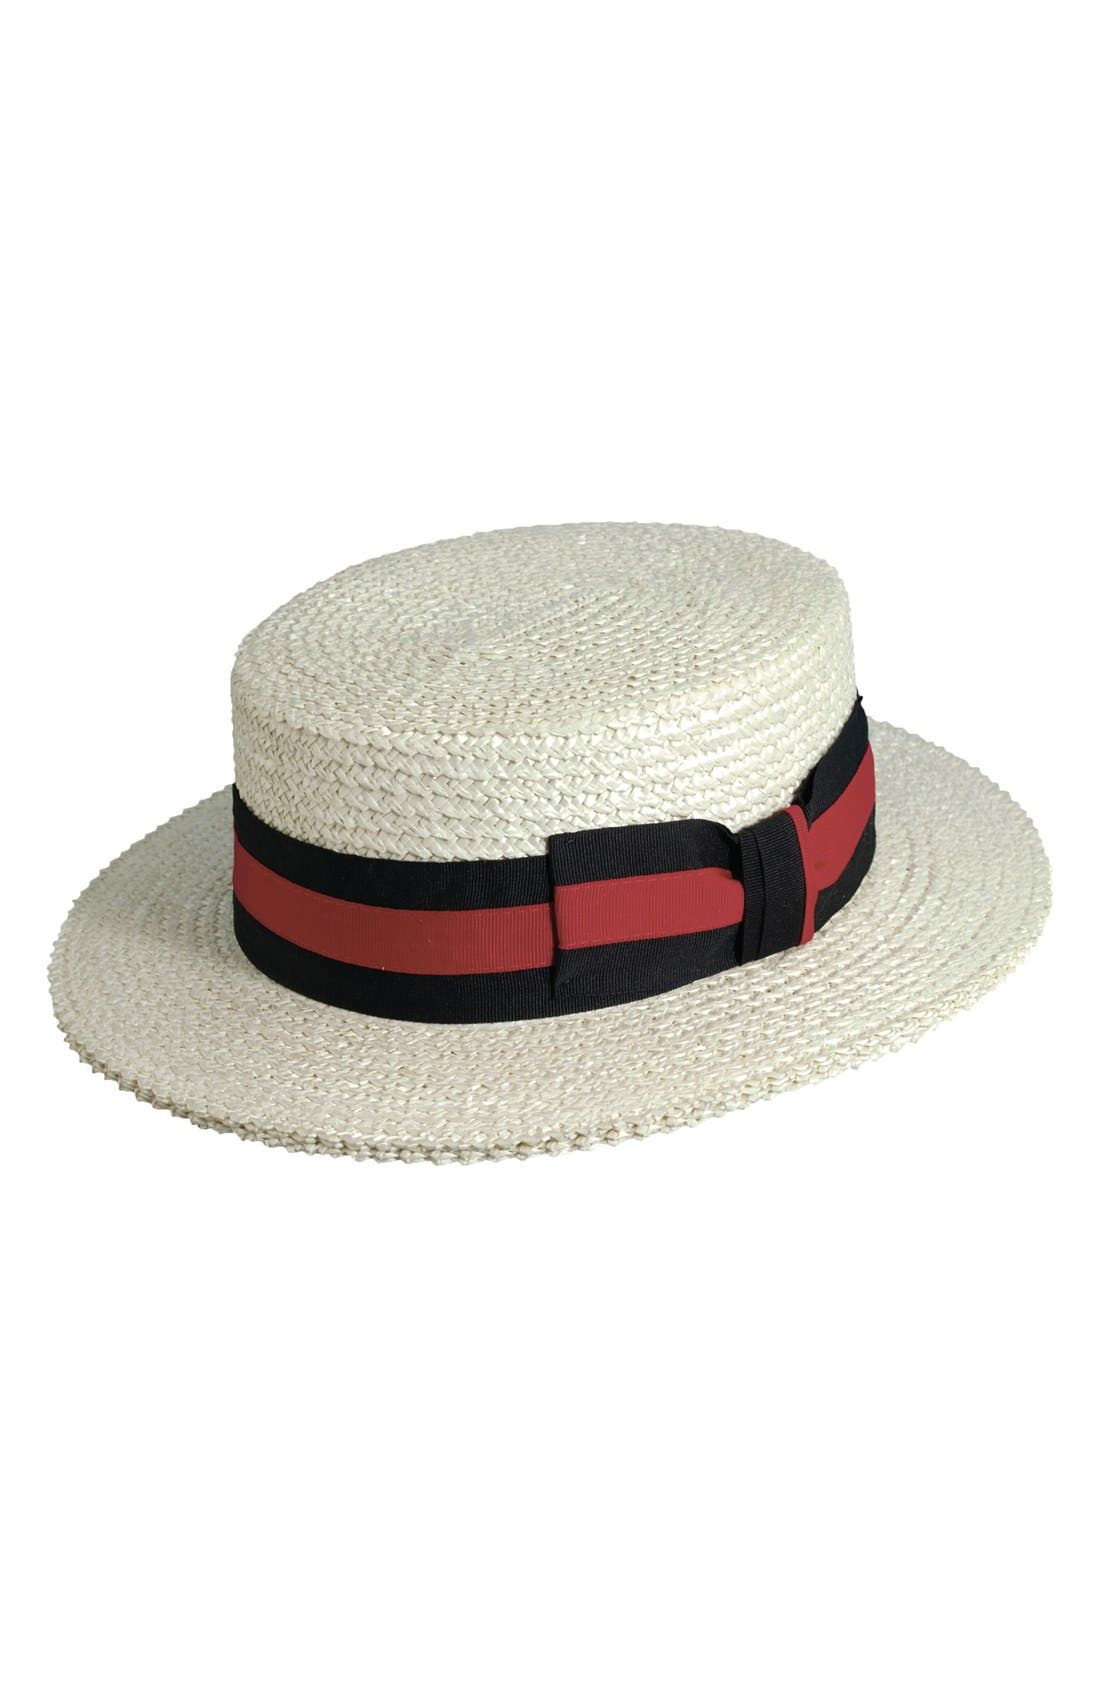 Straw Boater Hat,                         Main,                         color, BLEACH